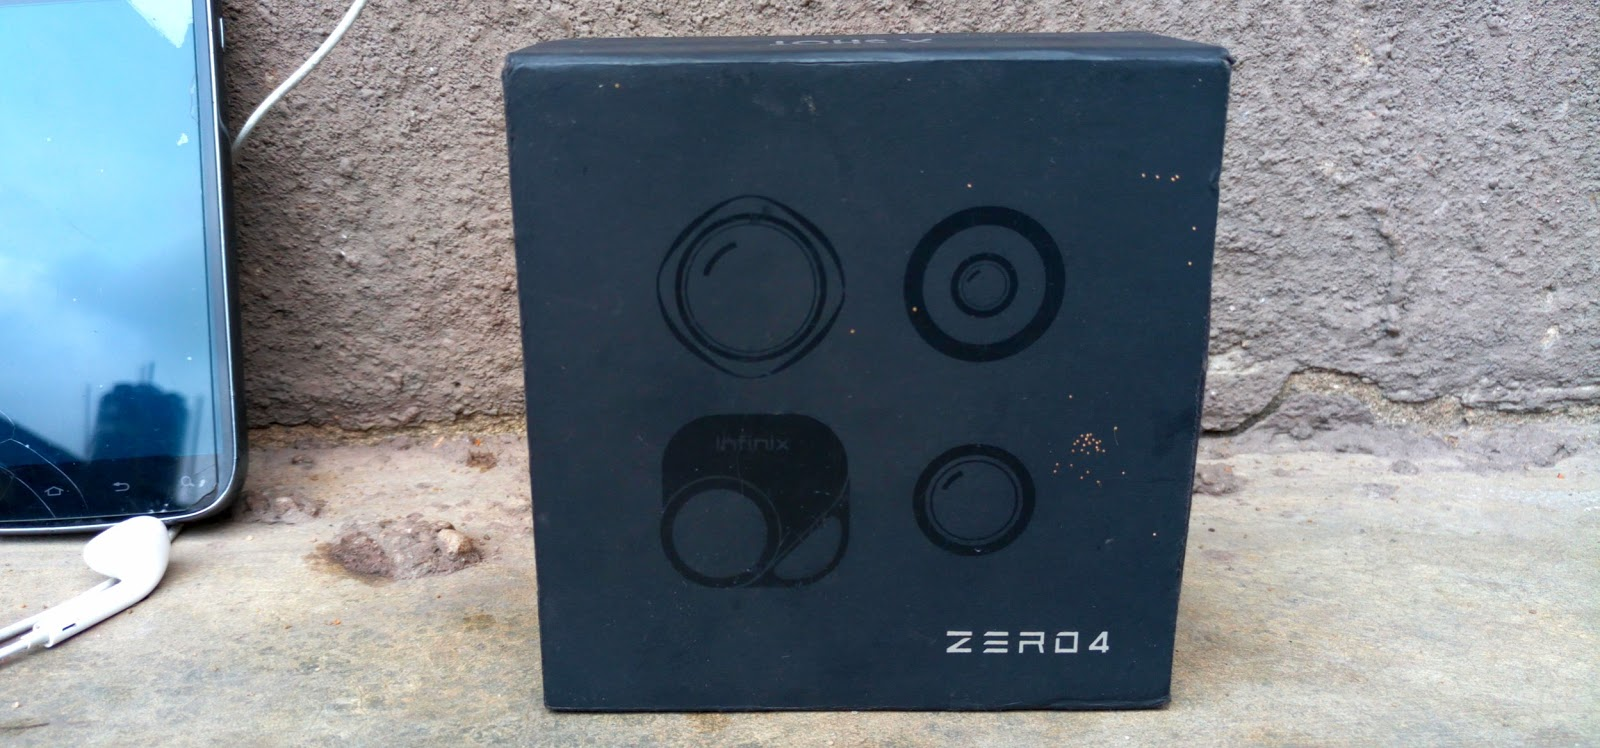 The X-Lens Box In Black Color